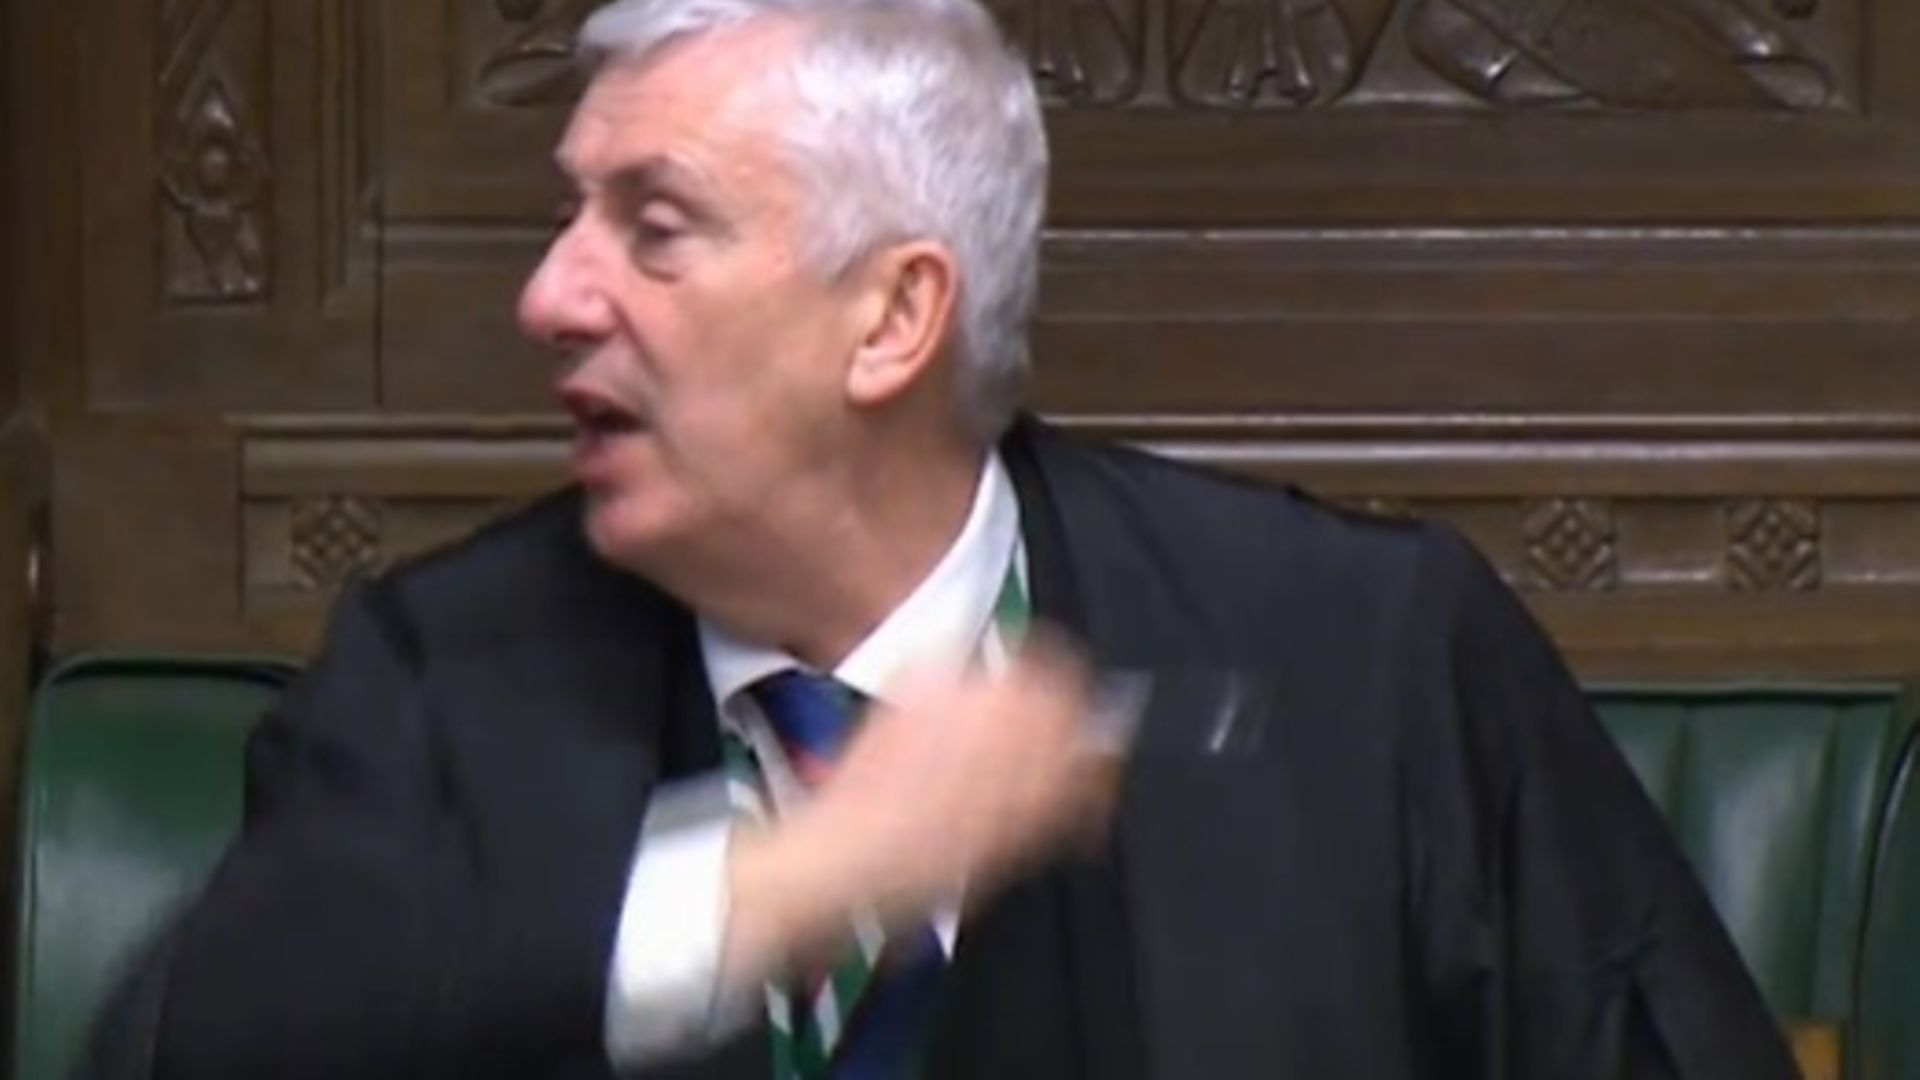 Lindsay Hoyle cuts off the prime minister's answer at PMQs - Credit: Parliament Live